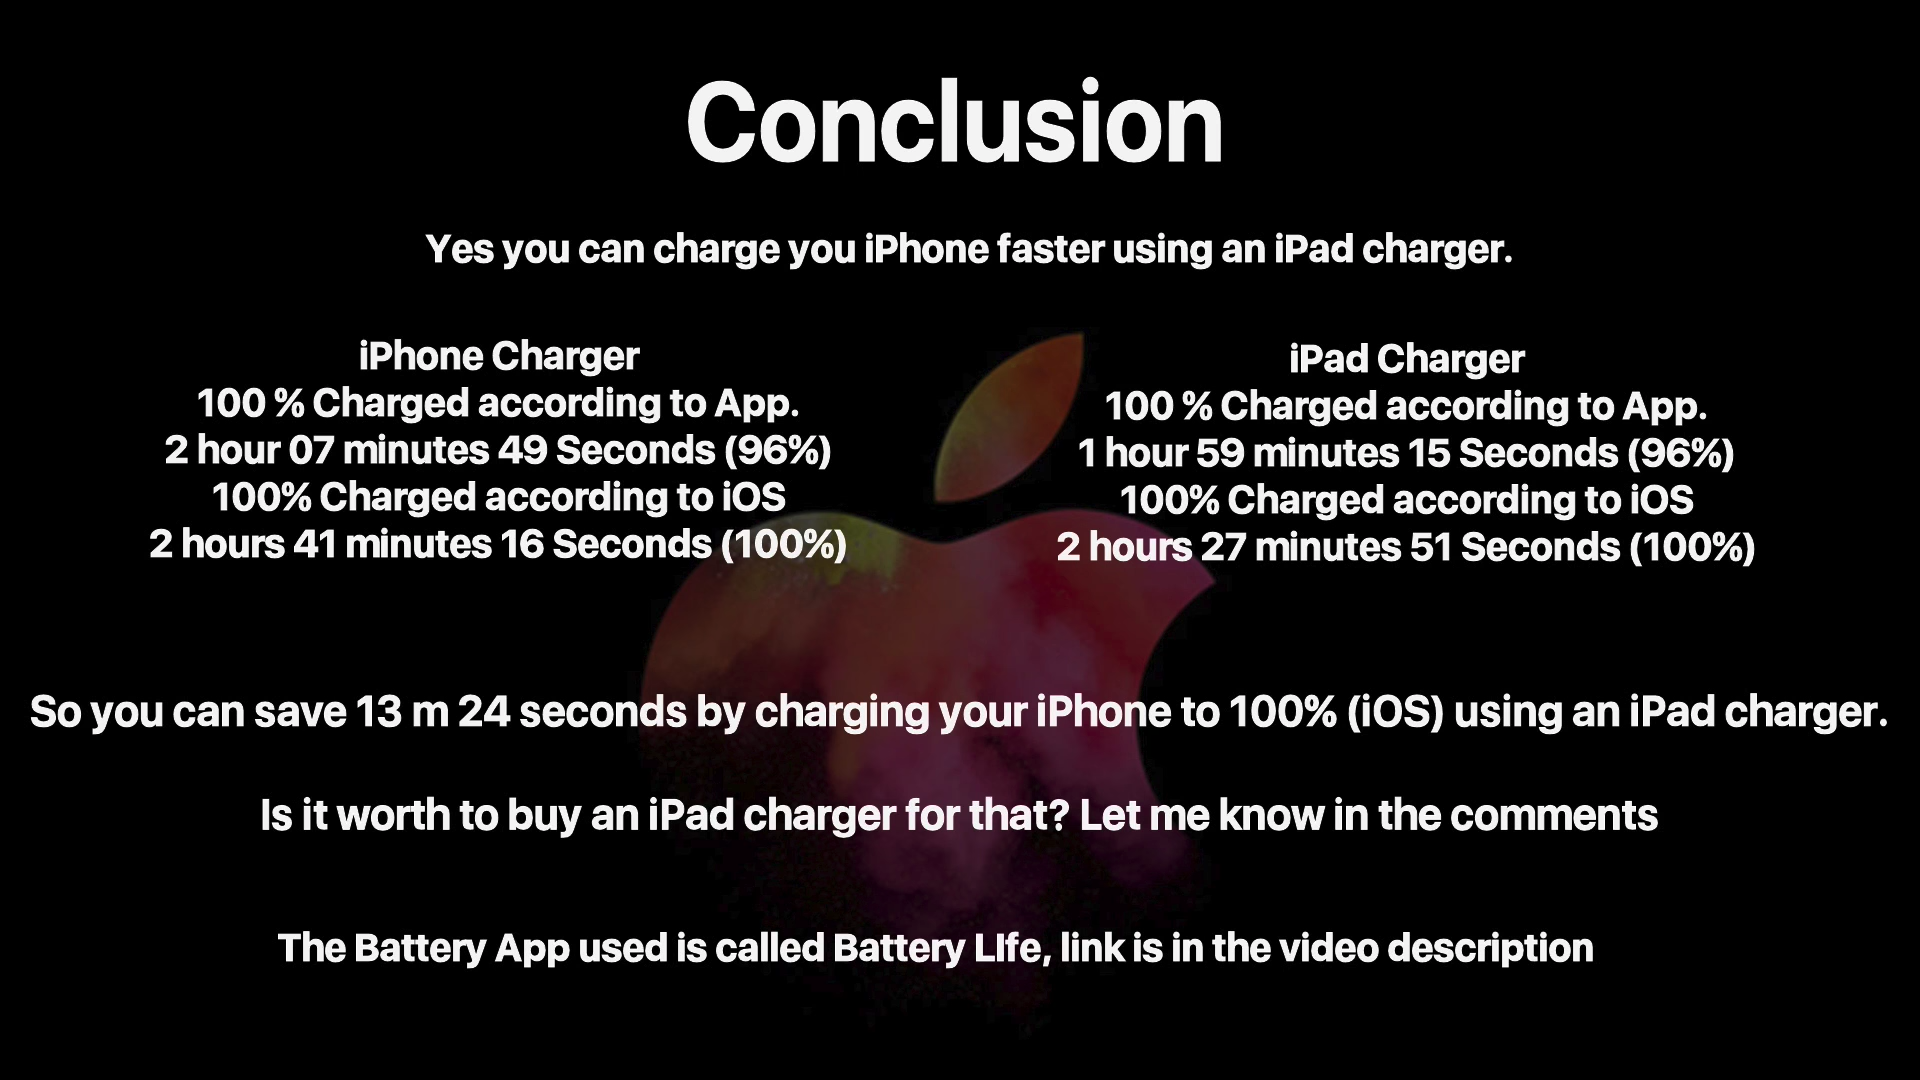 ipad-charger-charge-iphone_07